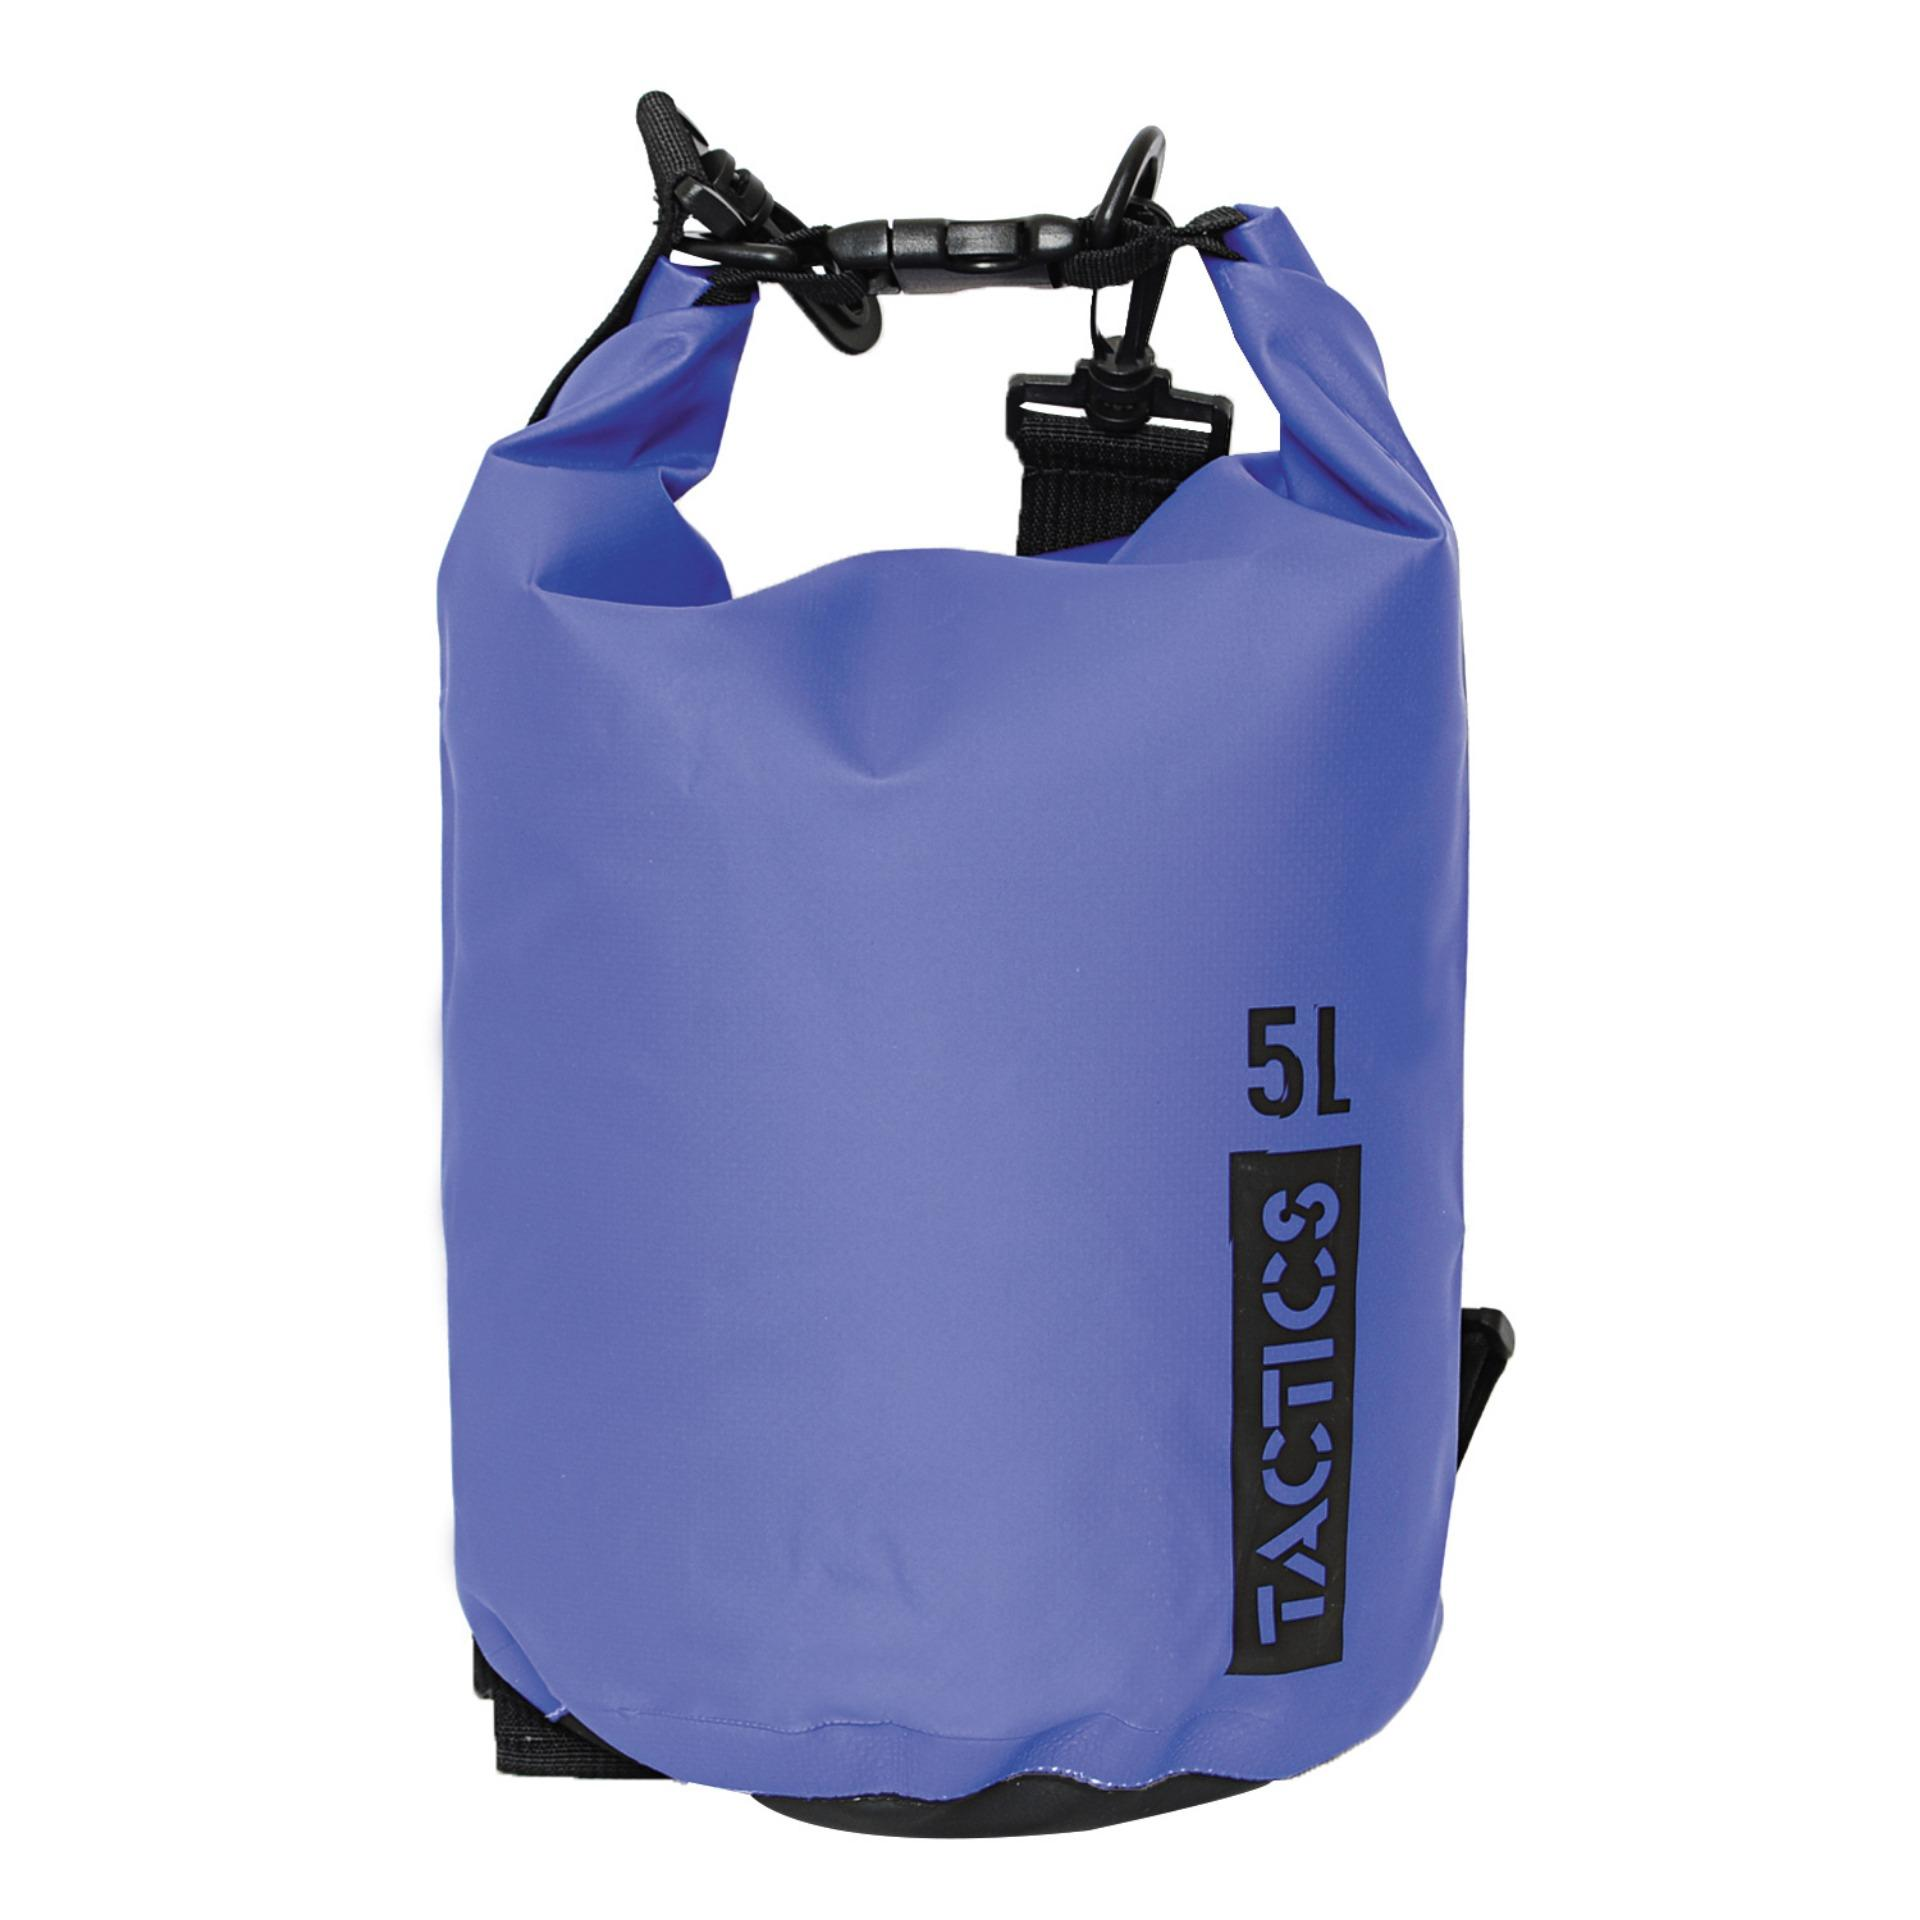 865a9a20c2ad Tactics Philippines  Tactics price list - Tactics Waterproof Dry Bag ...